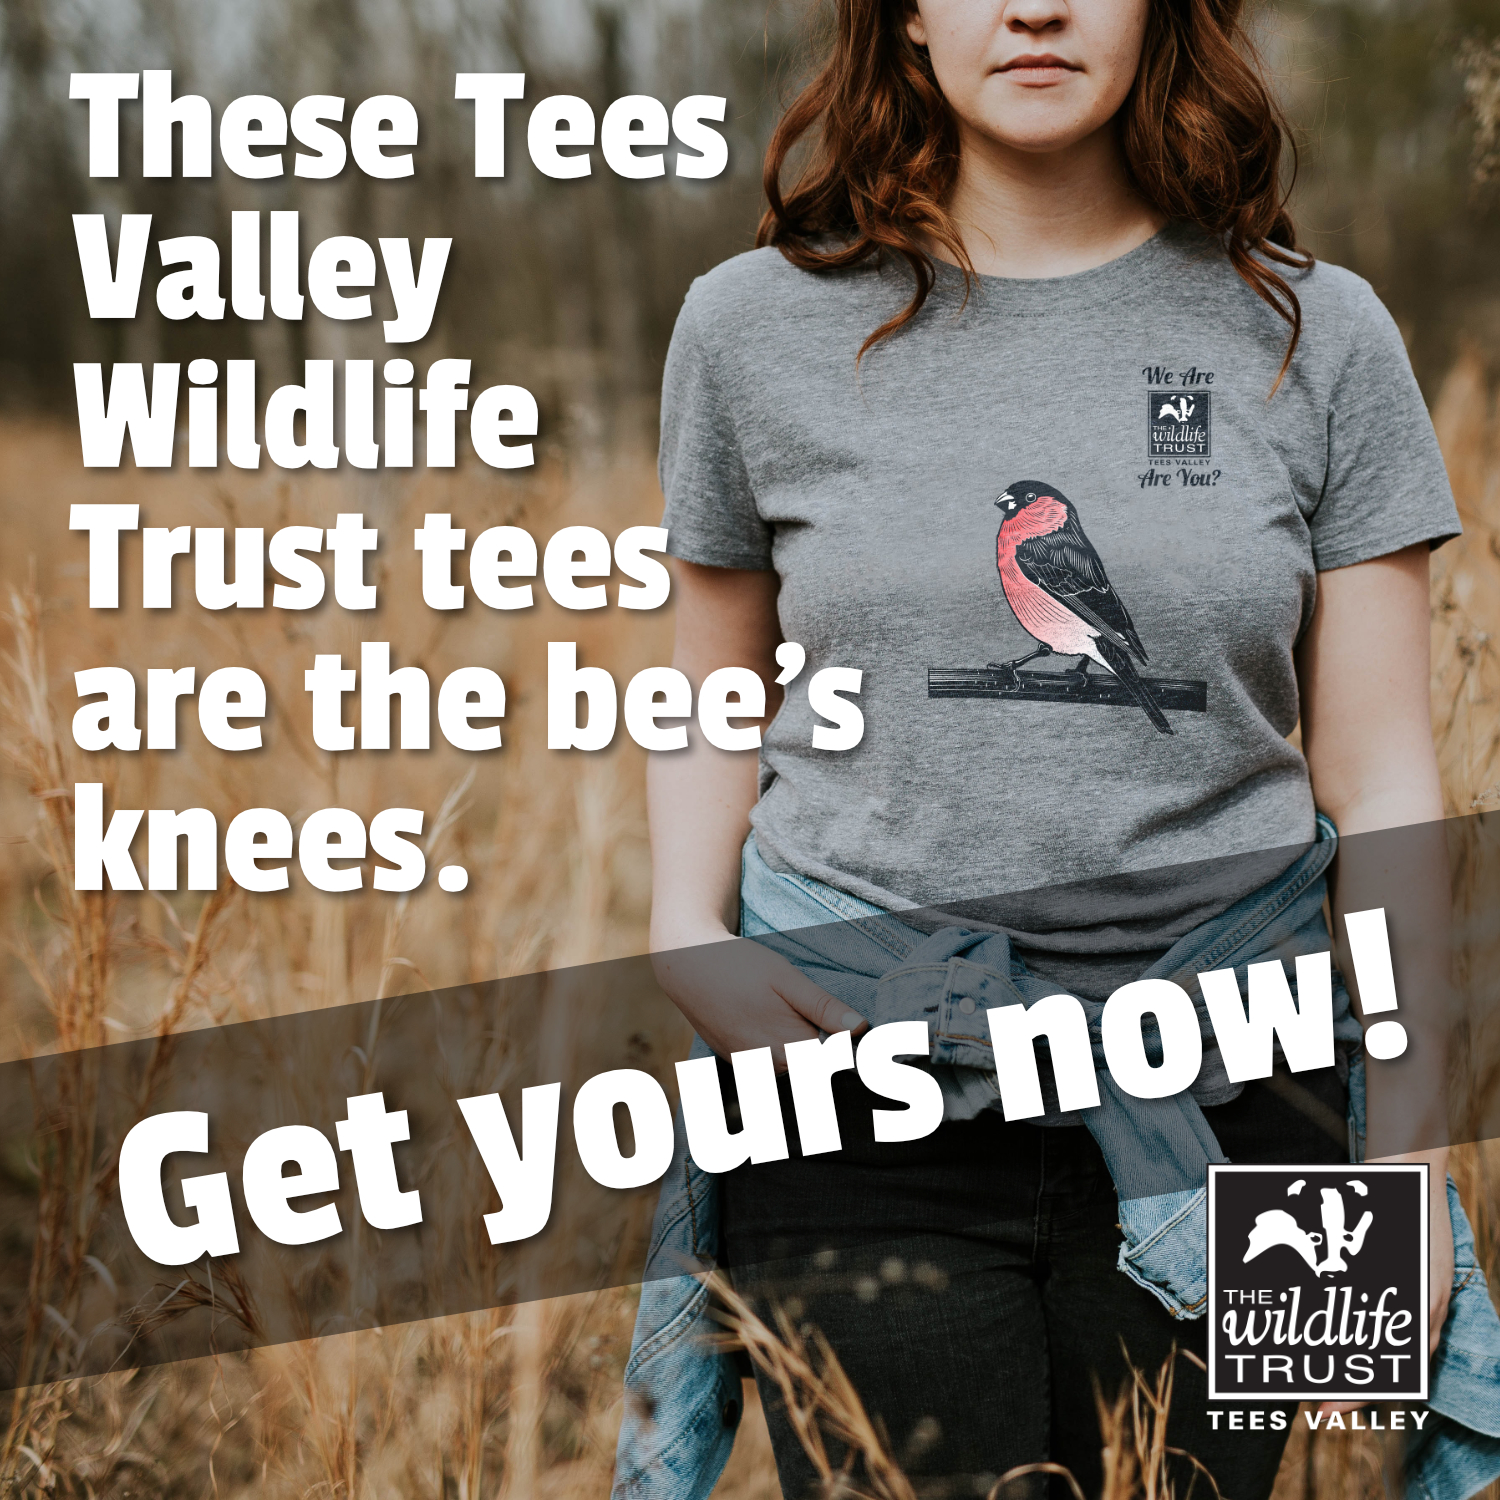 Get Yours Now! Advert showing a youn woman wearing a grey Tees Valley Wildlife Trust t-shirt with a bullfinch illustration and logo on it.